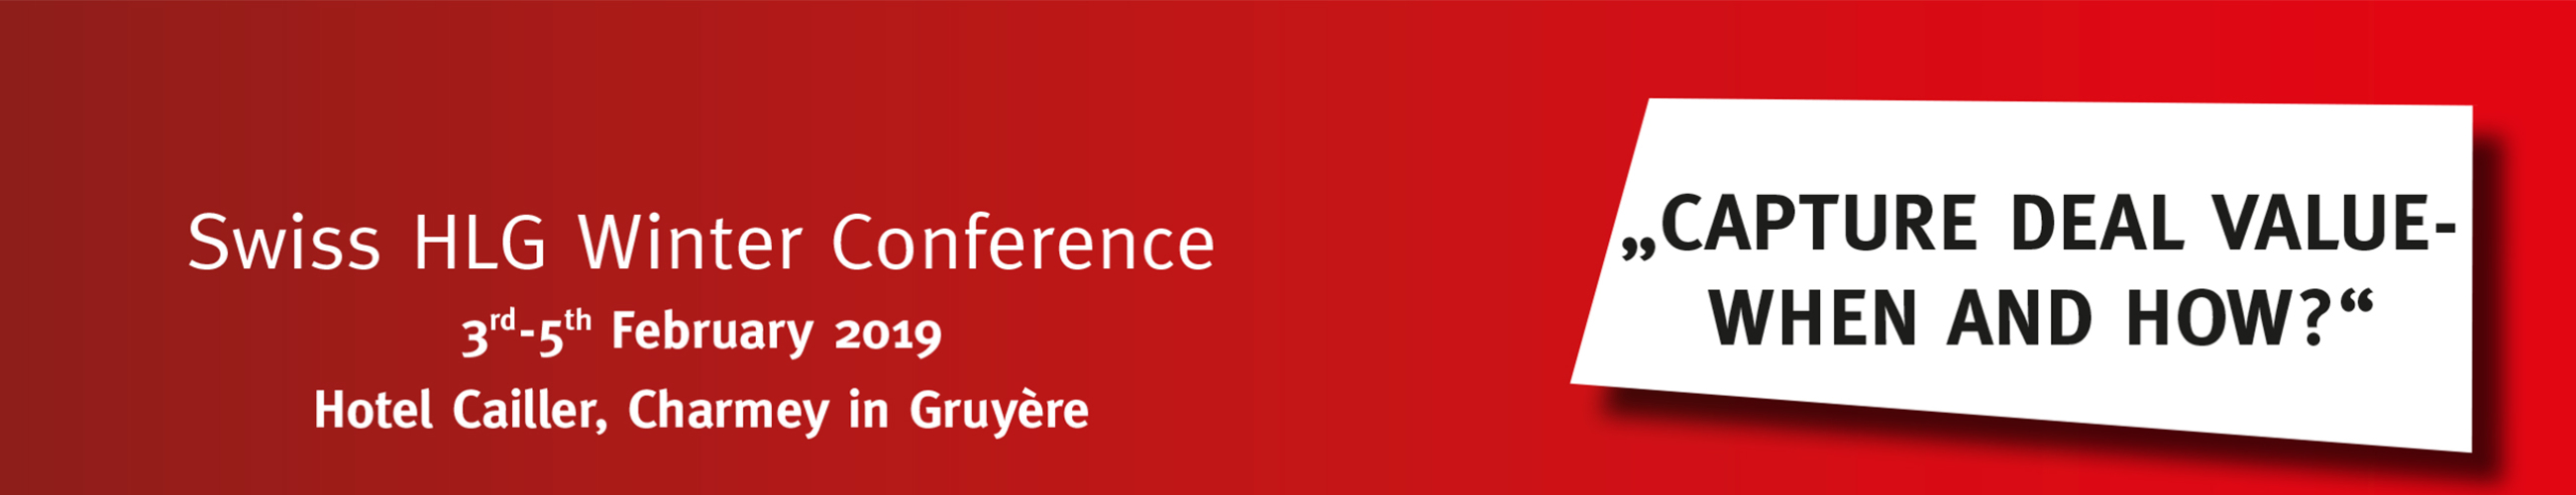 Swiss HLG website WC 2019 Conference Banner-slider